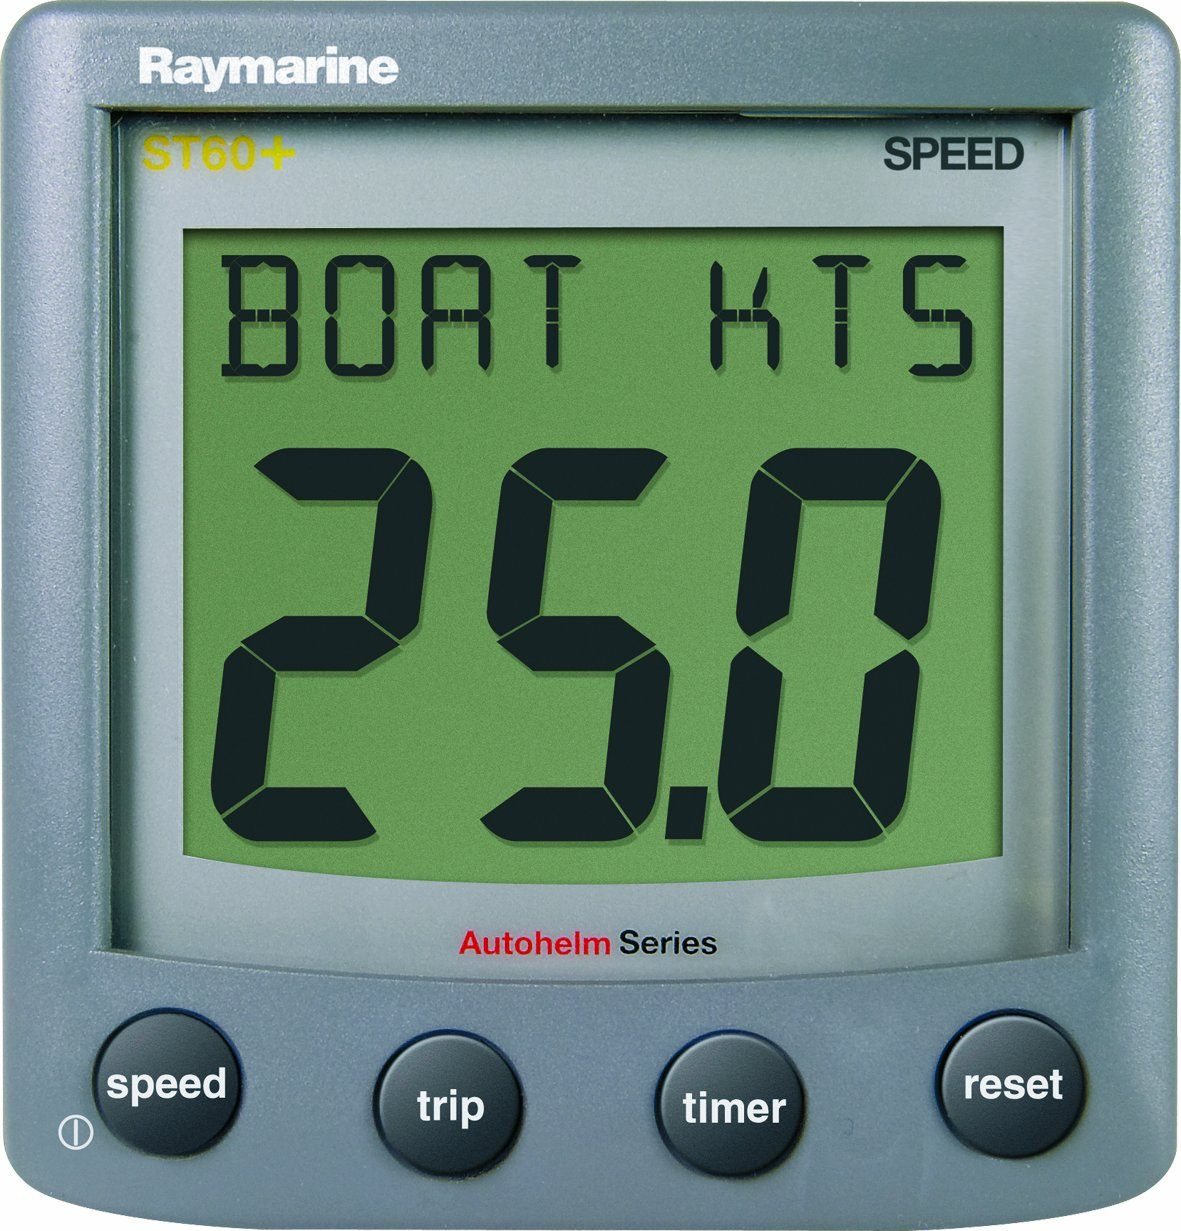 Raymarine ST60 Plus Speed System with Transducer (A22009-P) (26234)